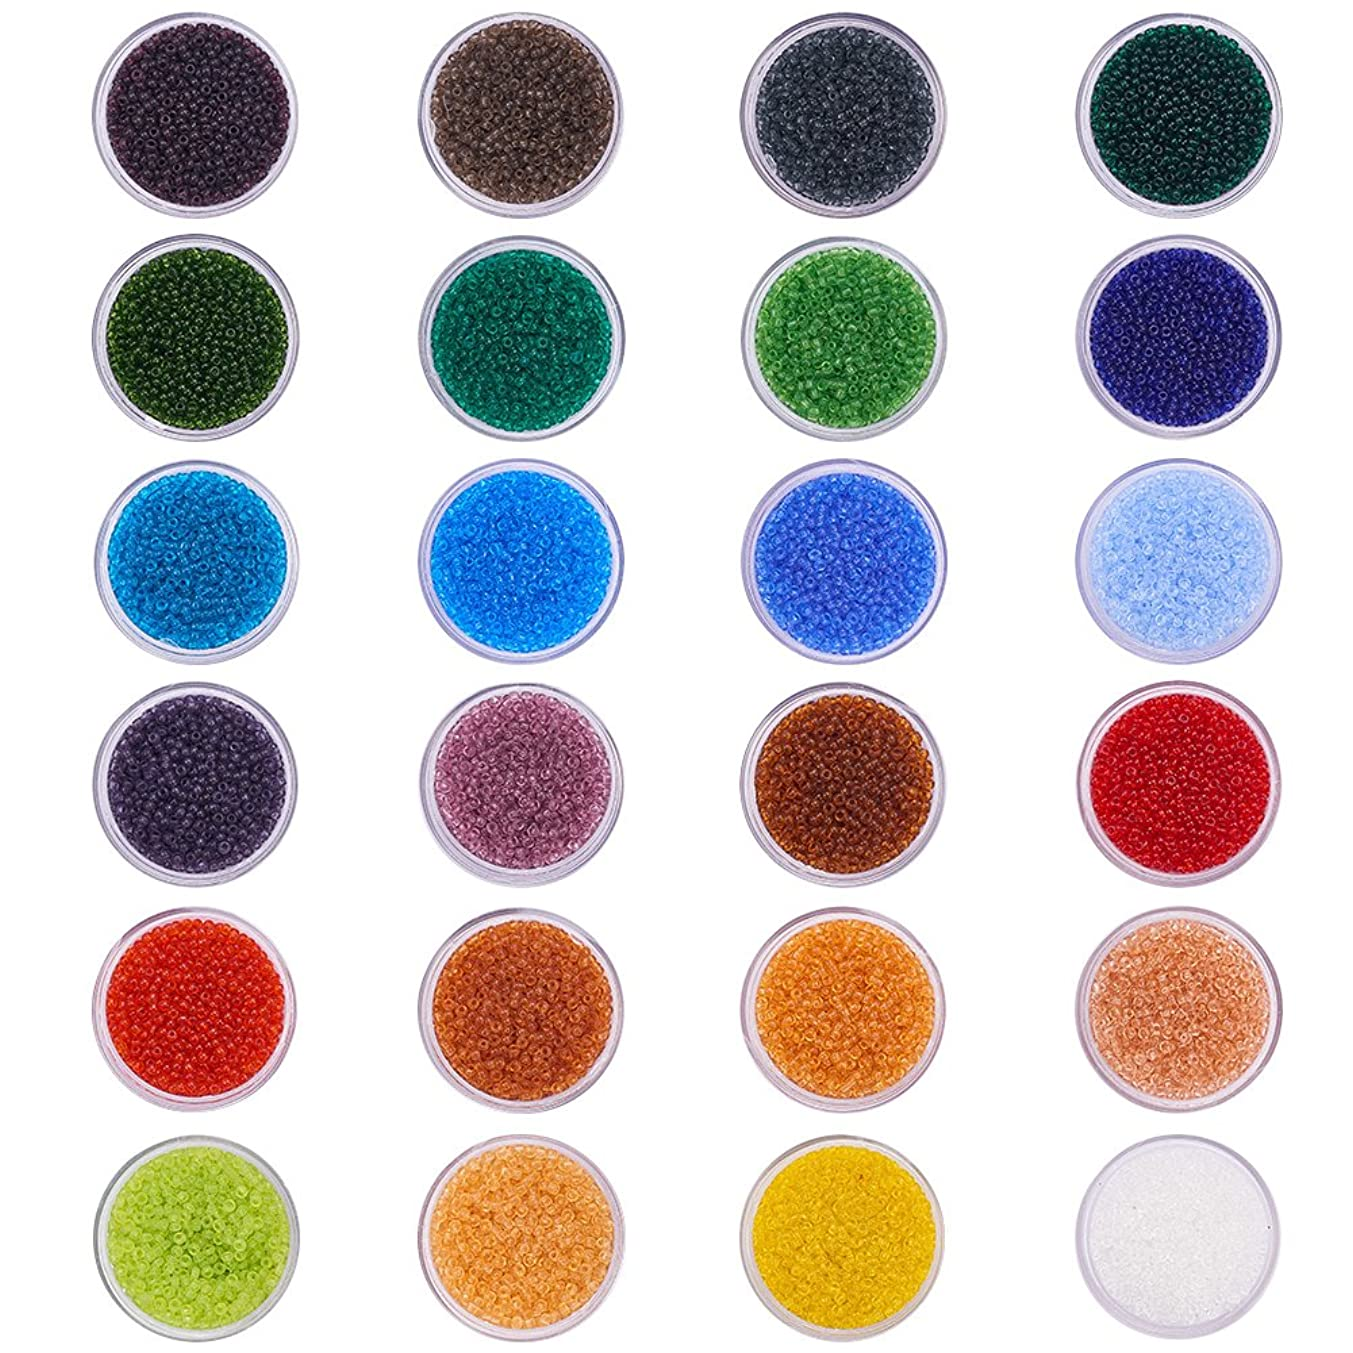 PandaHall Elite 24 Boxes of About 24000 Pcs 12/0 Multicolor Beading Glass Seed Beads 24 Colors Transparent Lined Round Pony Bead Mini Spacer Beads Diameter 2mm with Container Box for Jewelry Making